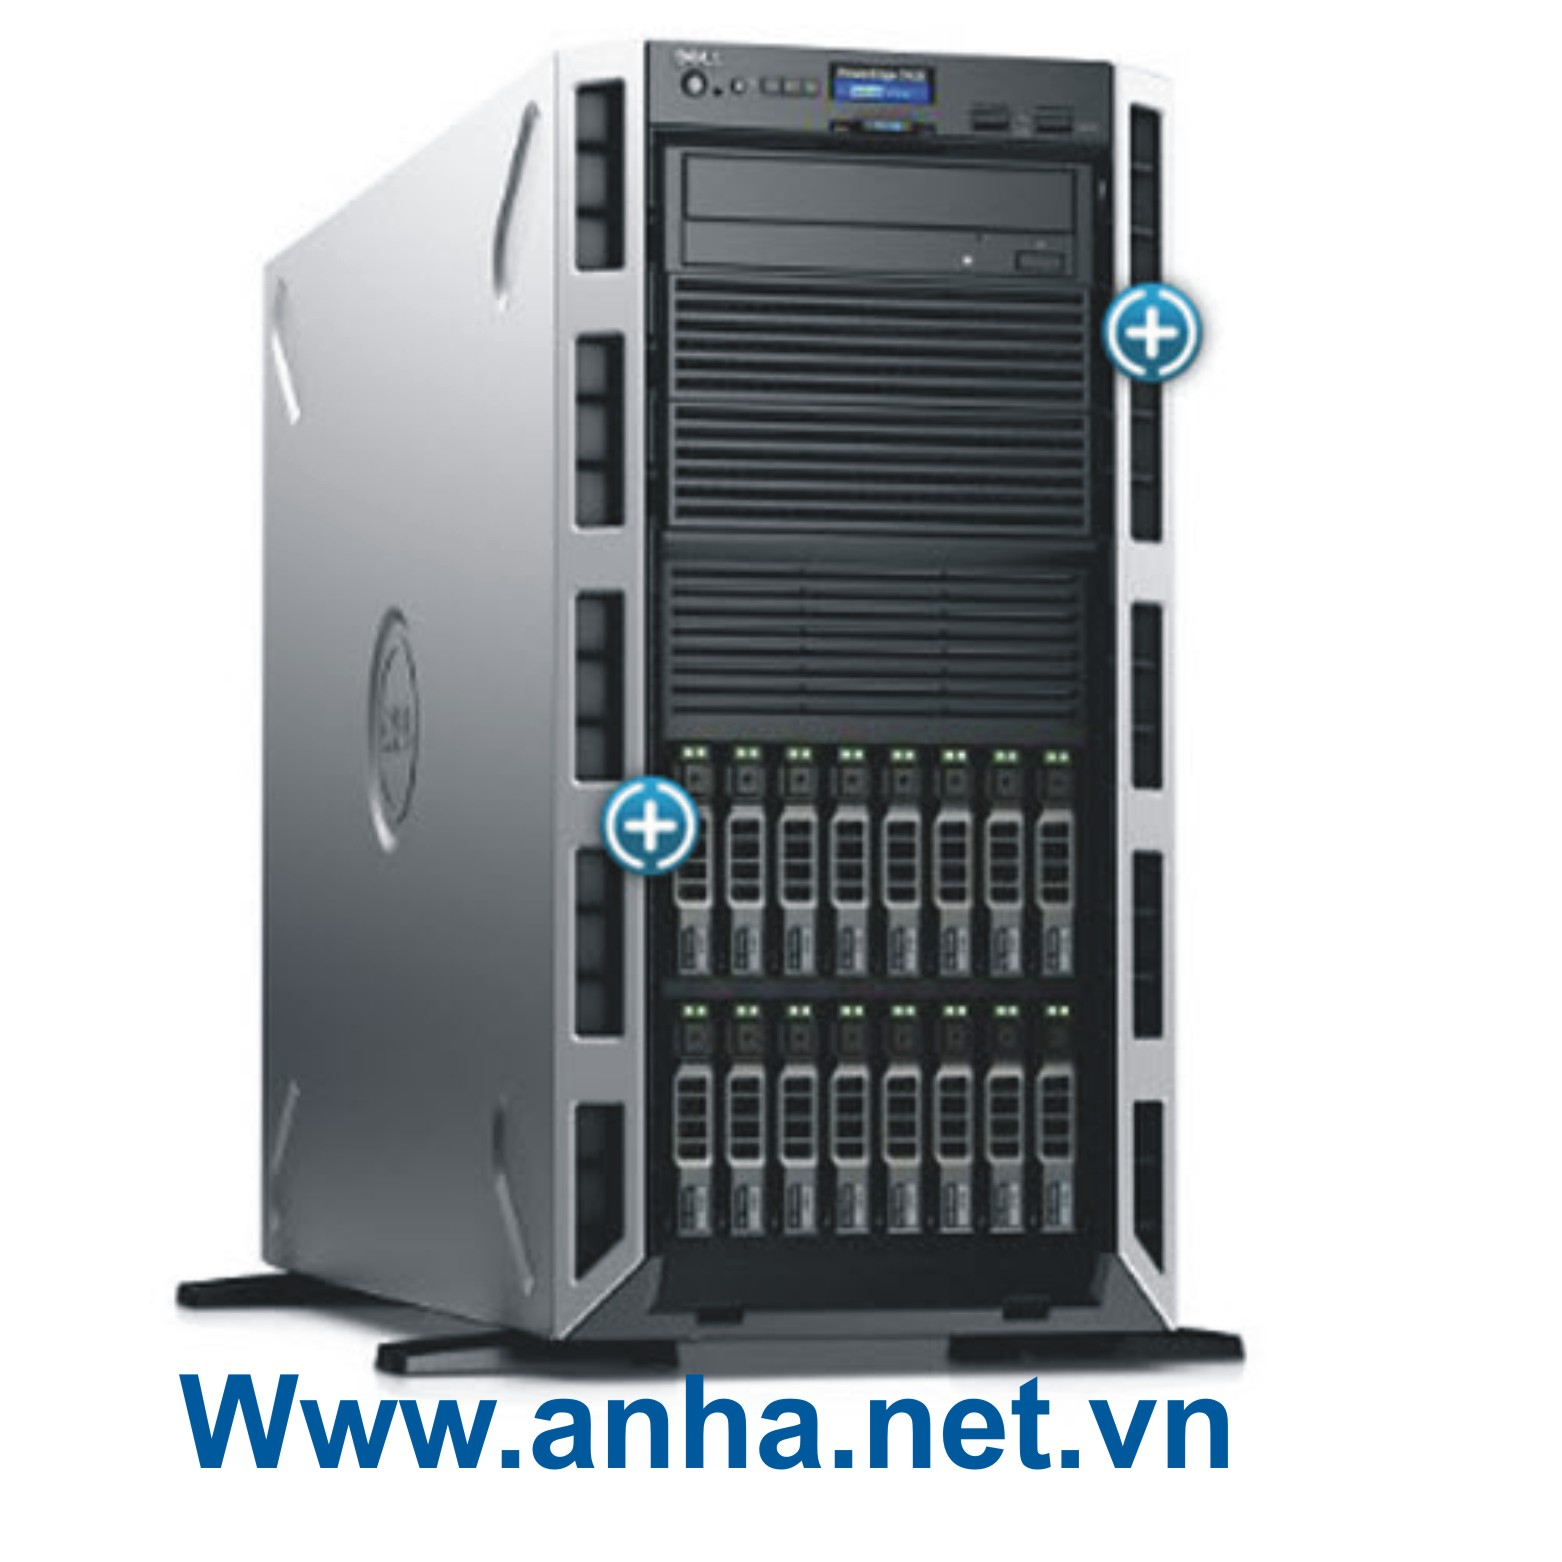 Máy chủ DELL PowerEdge T430 E5-2609v3 6C 1.9Ghz 15MB cache